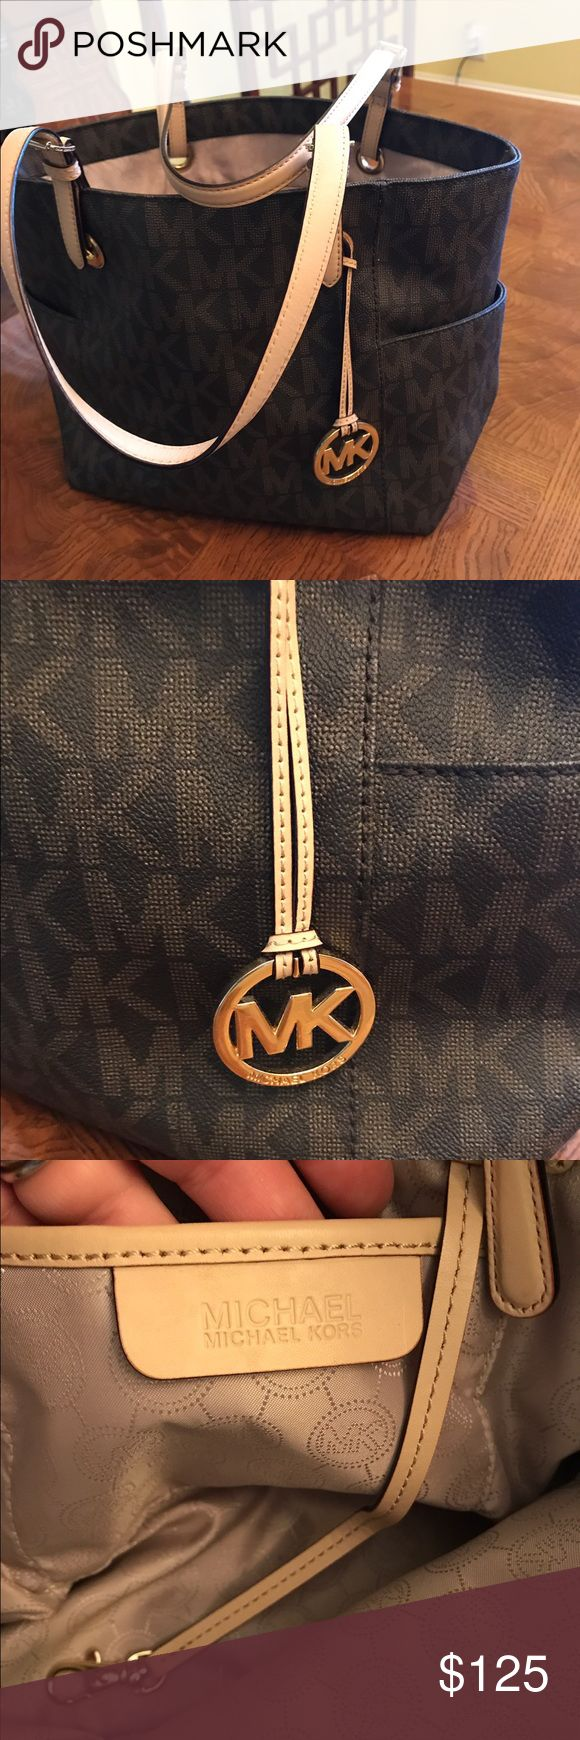 Michael Kors Jetset tote Excellent condition brown jetset signature tote by Michael Kors. Barely used but has one very small light stain on bottom inside. Lots of compartments and middle zip pocket. Michael Kors Bags Totes